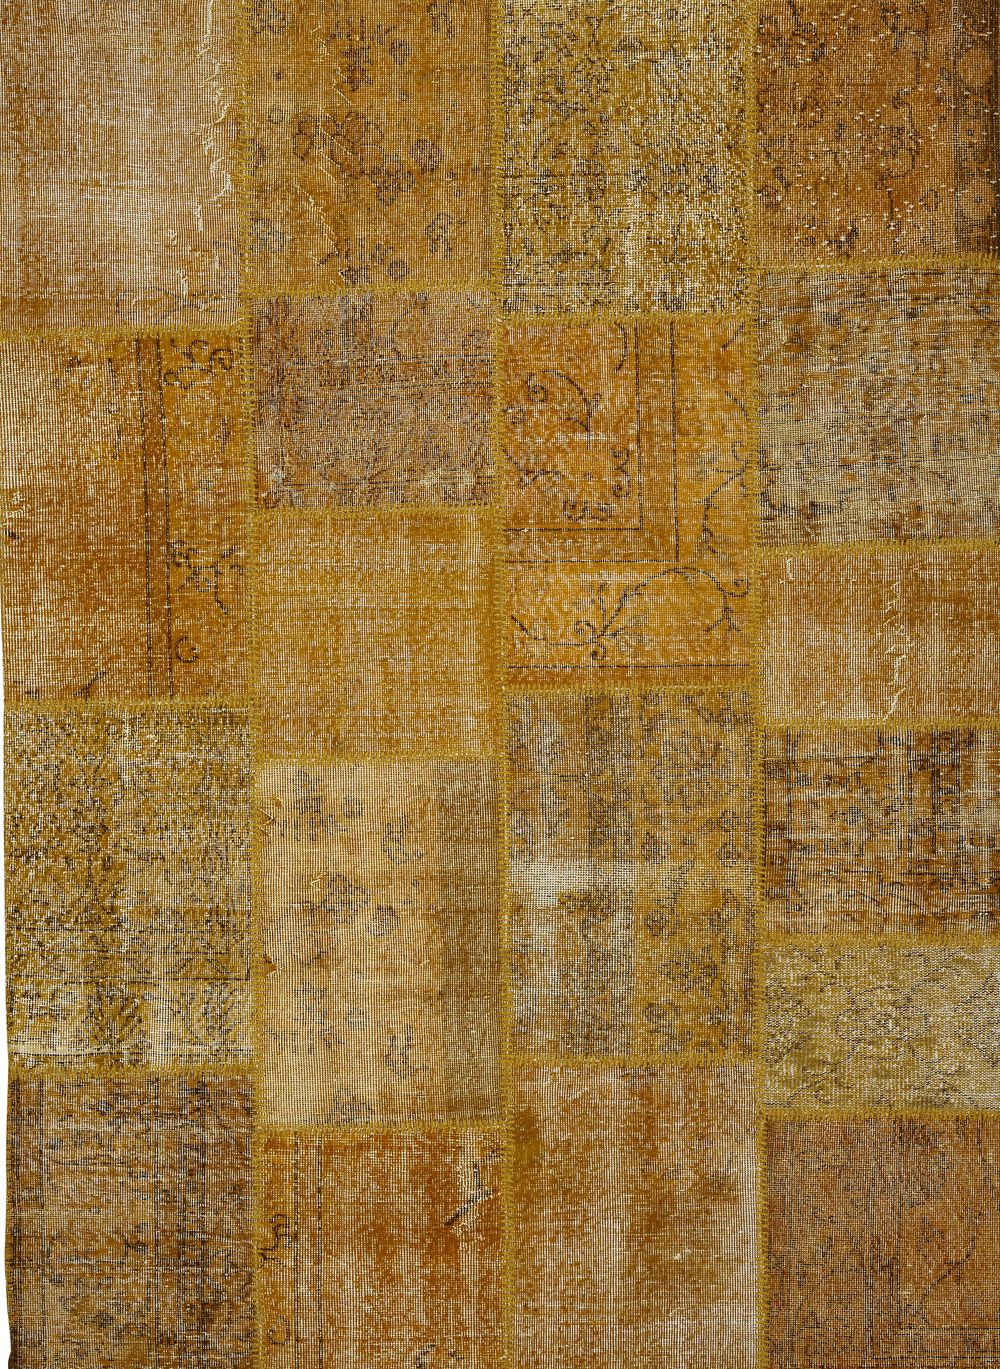 Steven And Chris Antique Kelim Patchwork Rug Collection In Beautiful Gold Mustard Tones Alexanian